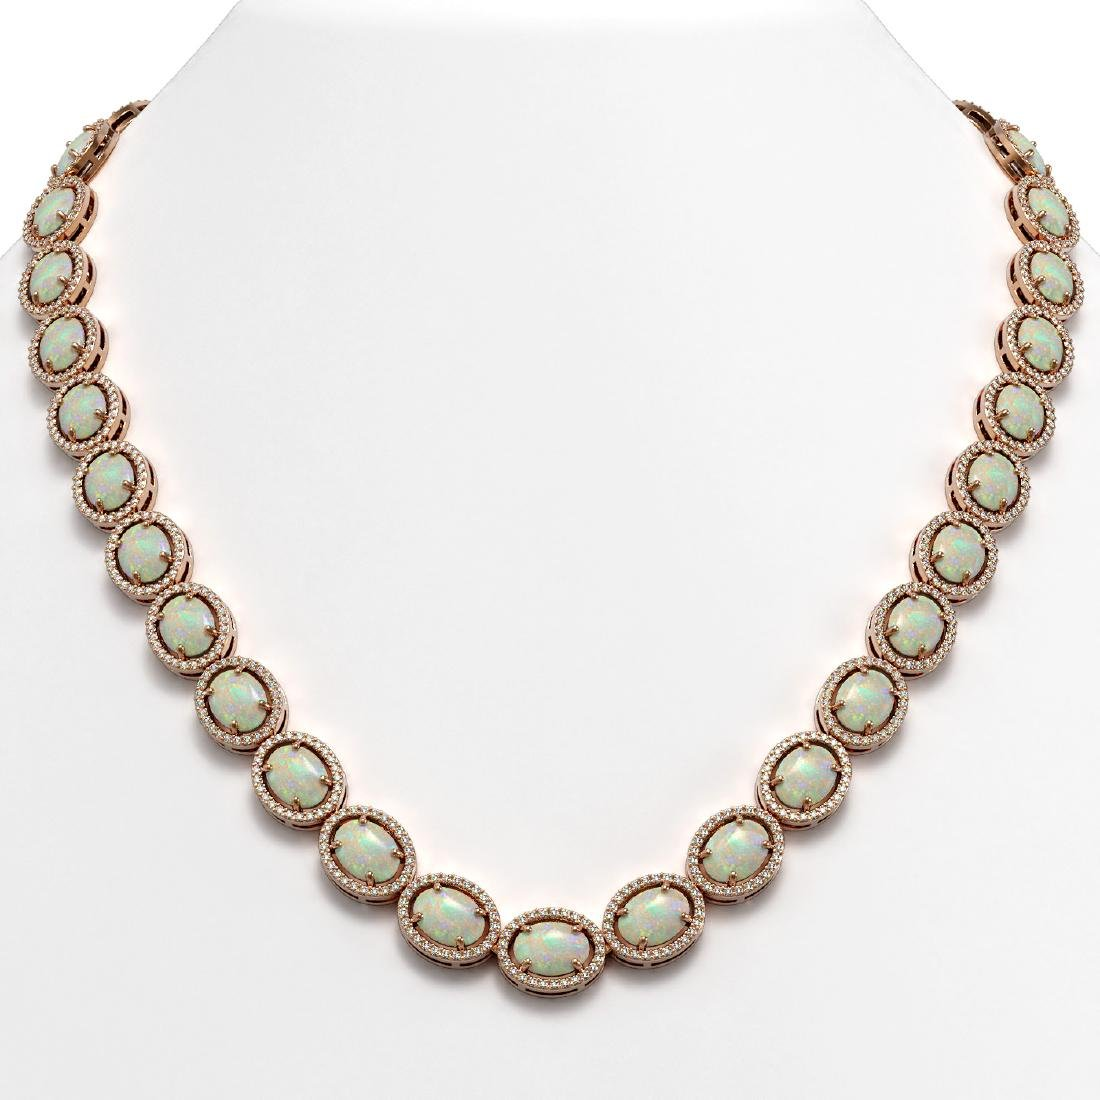 42.29 CTW Opal & Diamond Halo Necklace 10K Rose Gold